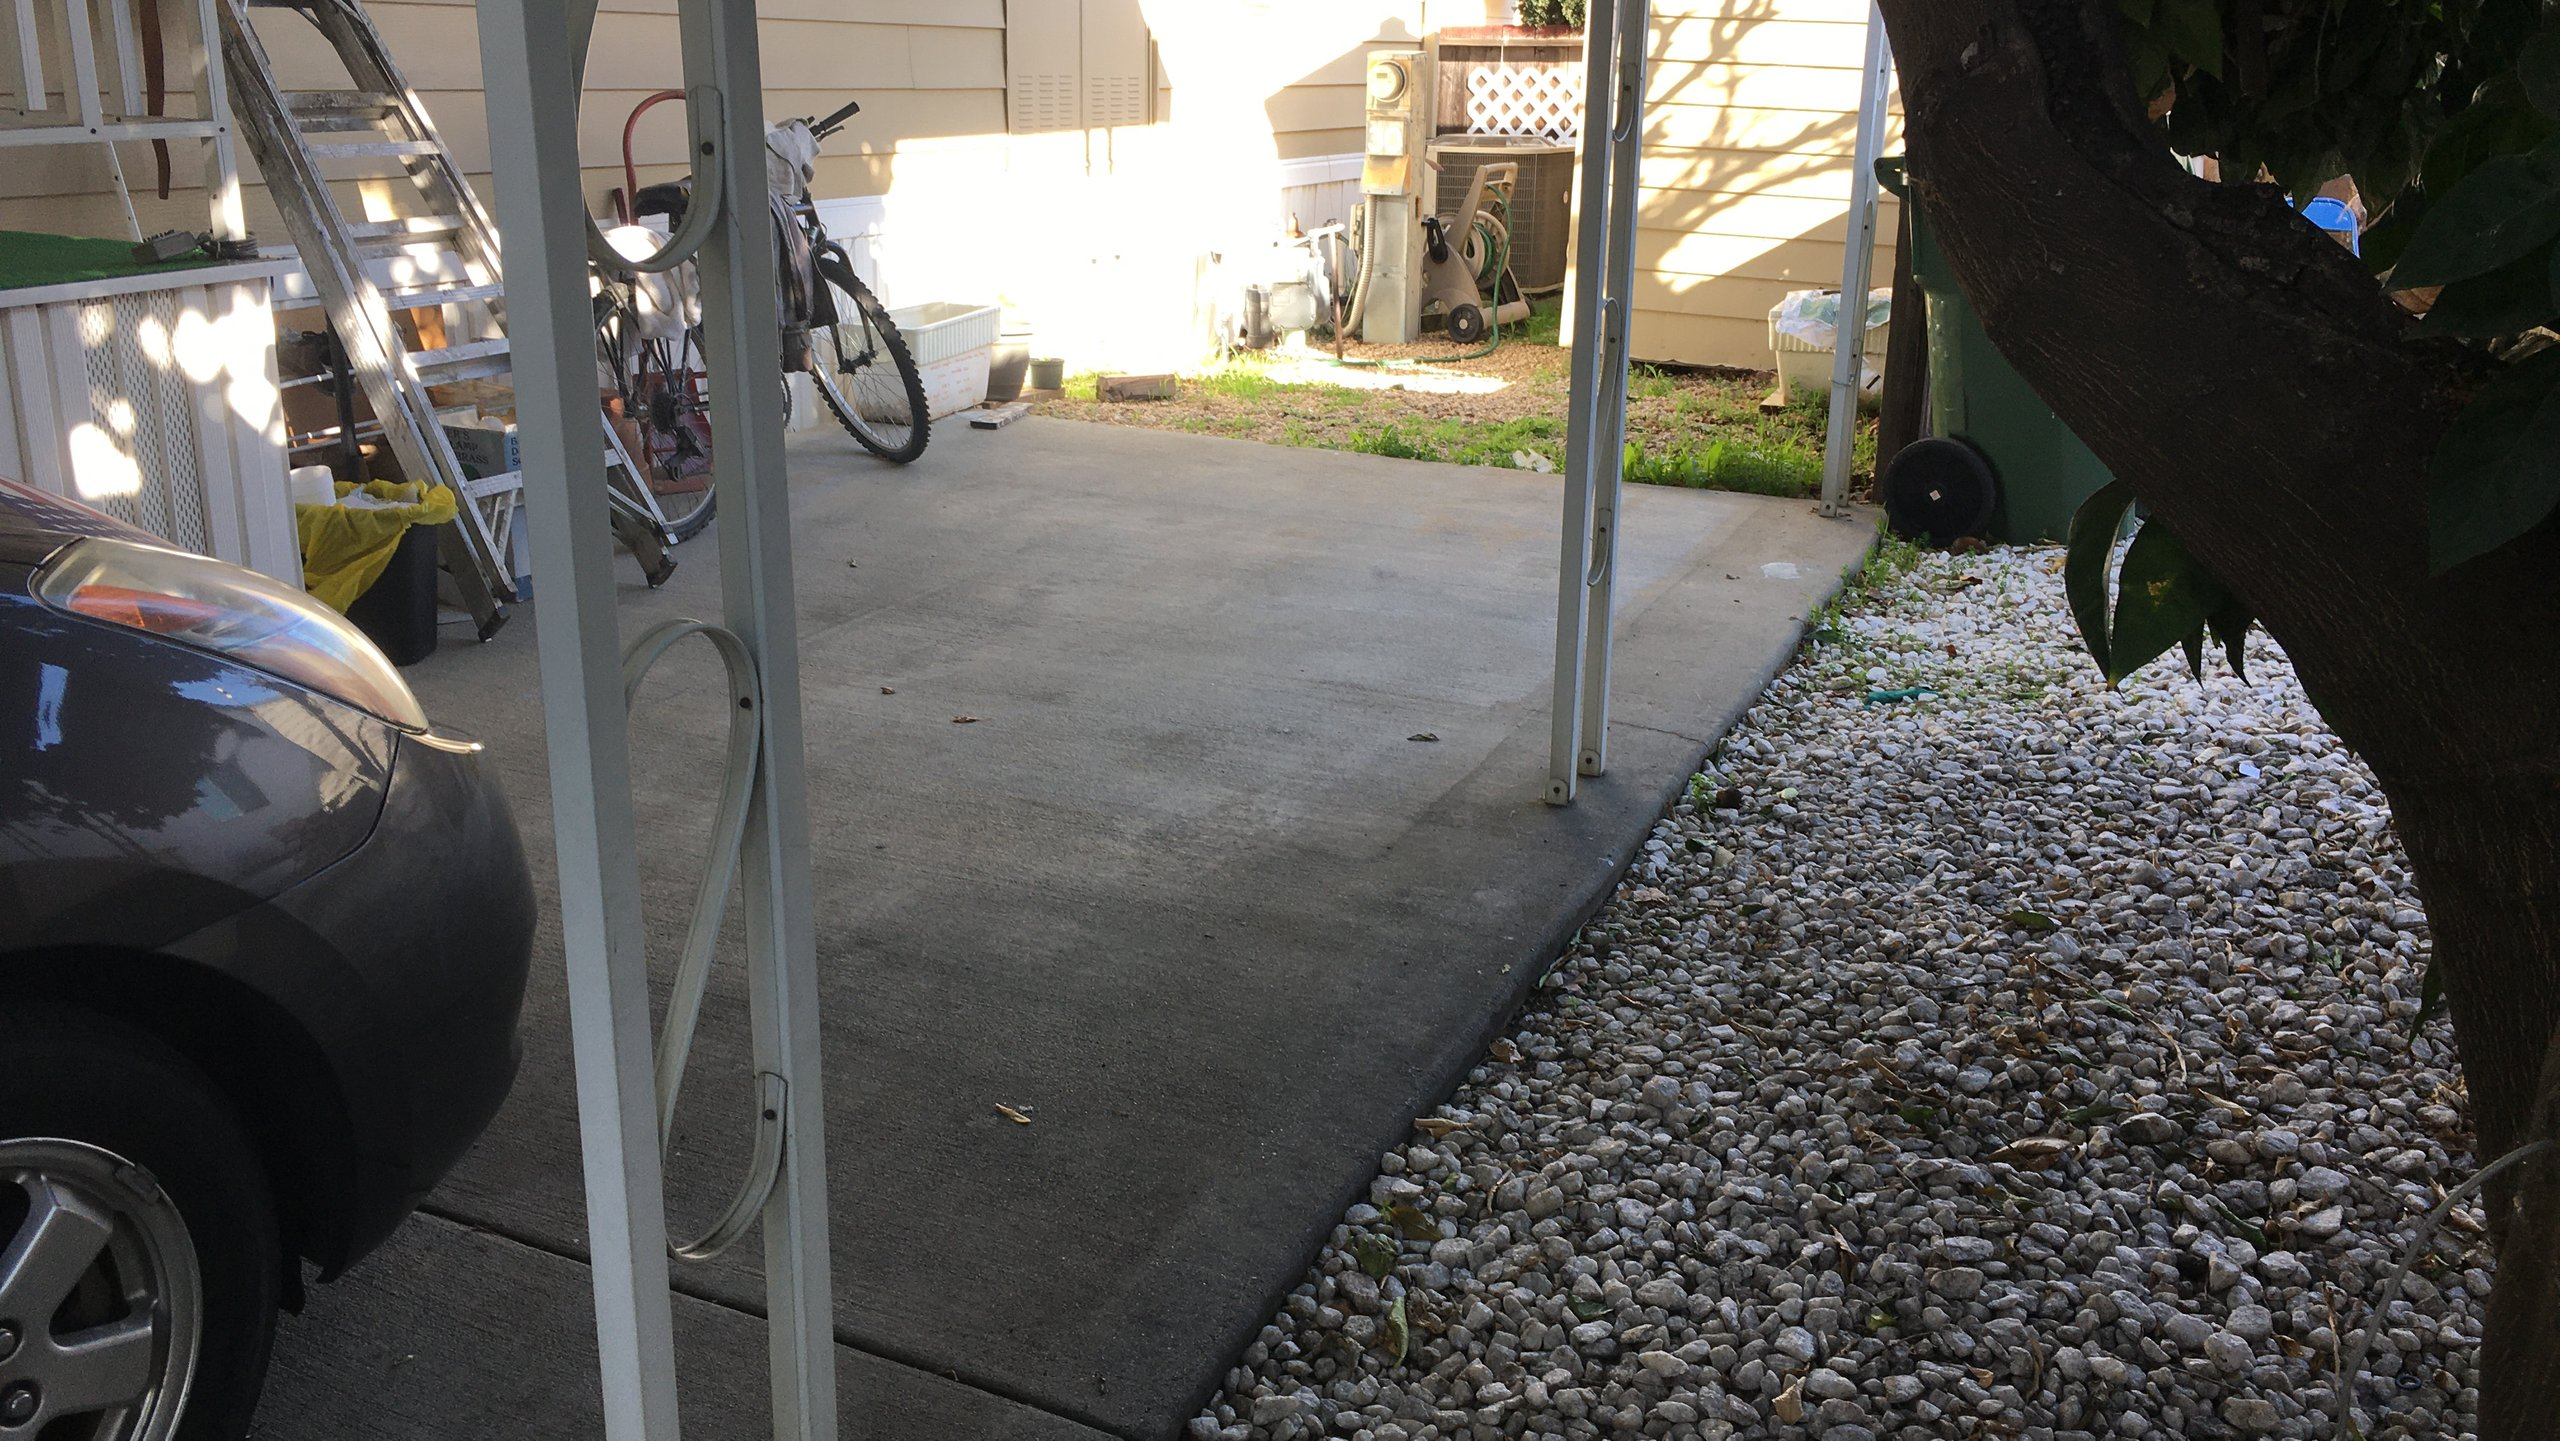 15x7 Carport self storage unit